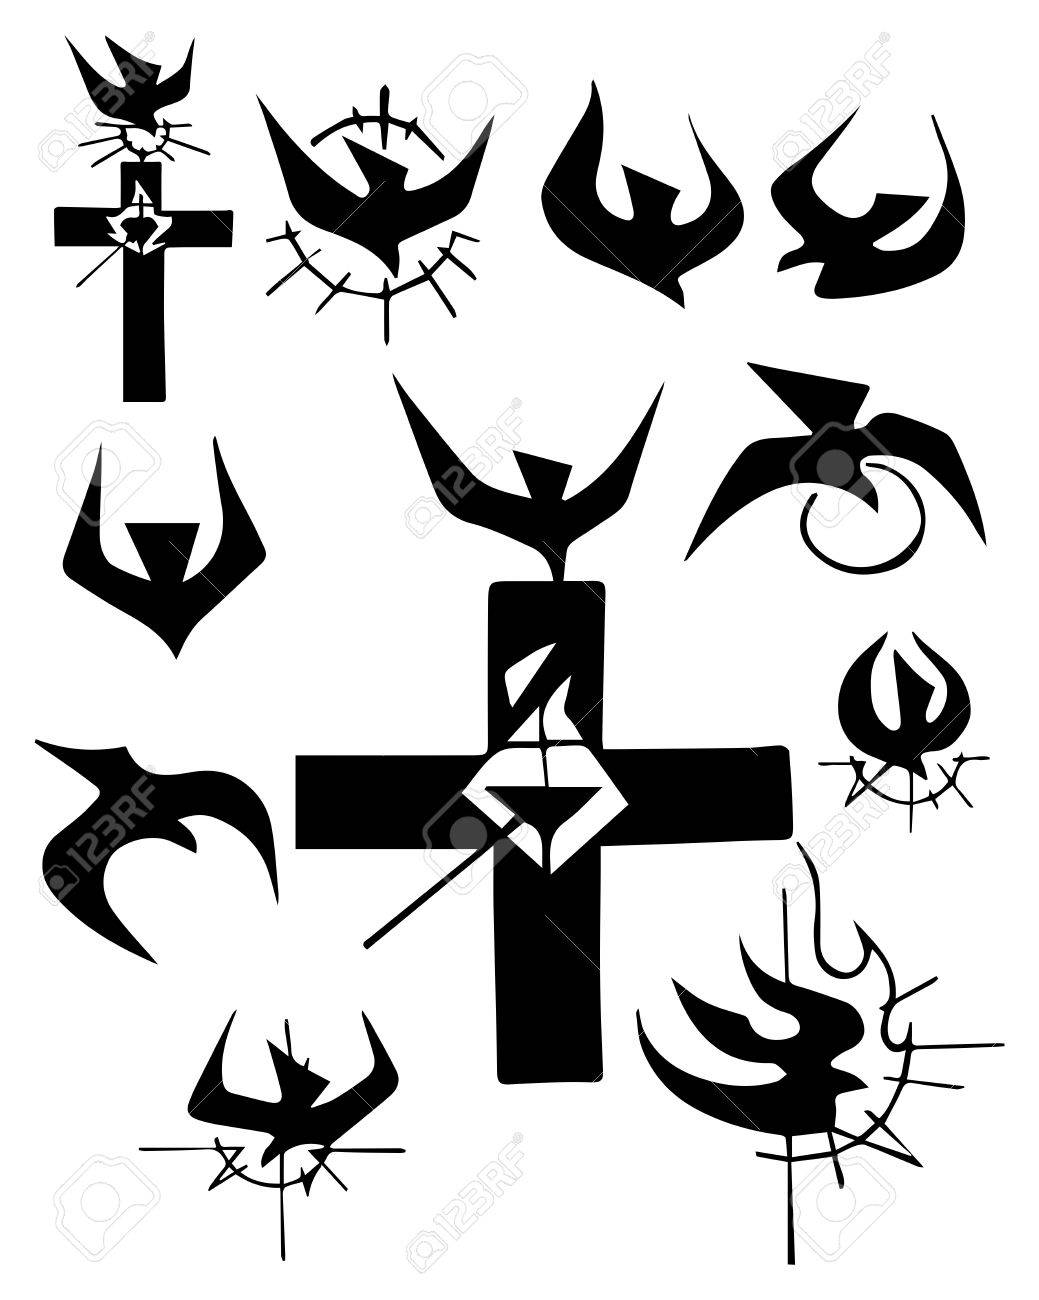 Hand drawn vector illustration or drawing of a christian cross hand drawn vector illustration or drawing of a christian cross and other religious symbols stock vector biocorpaavc Choice Image